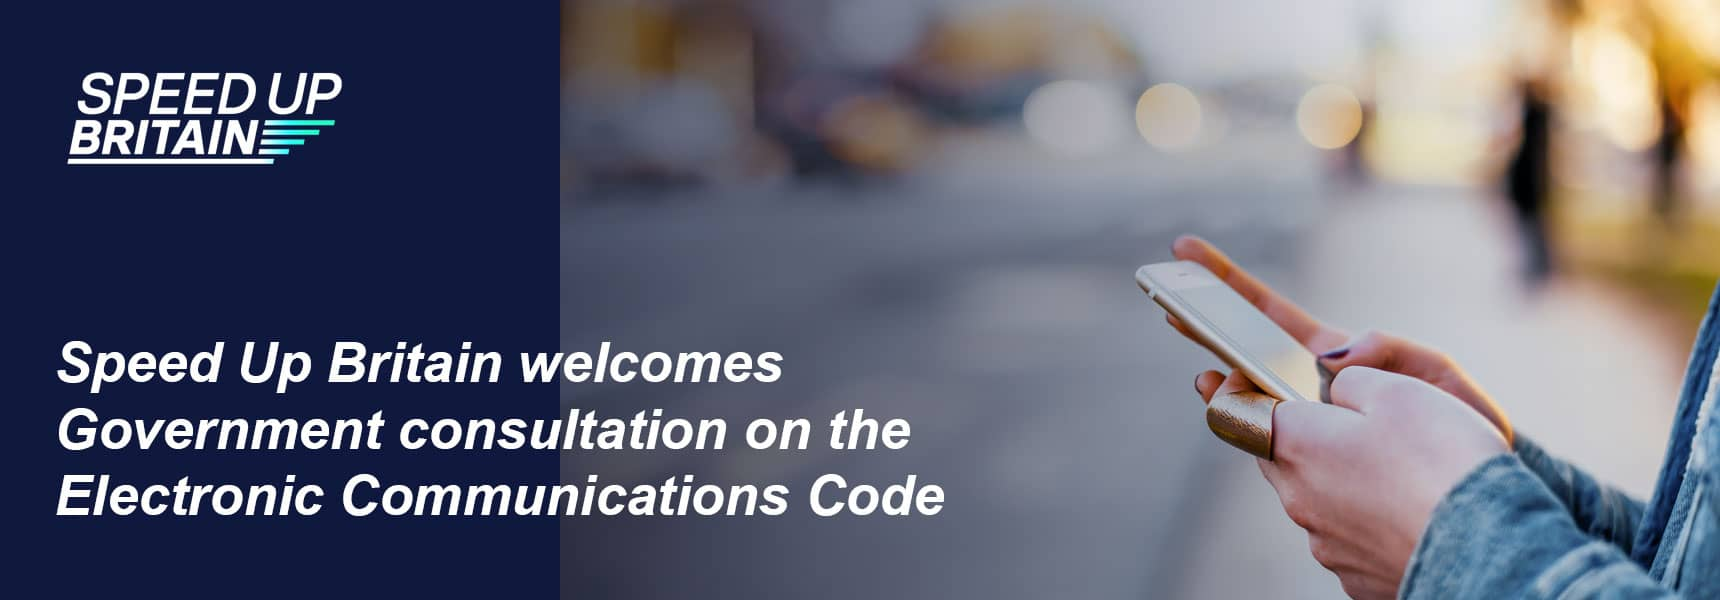 Speed Up Britain welcomes Government consultation on the Electronic Communications Code